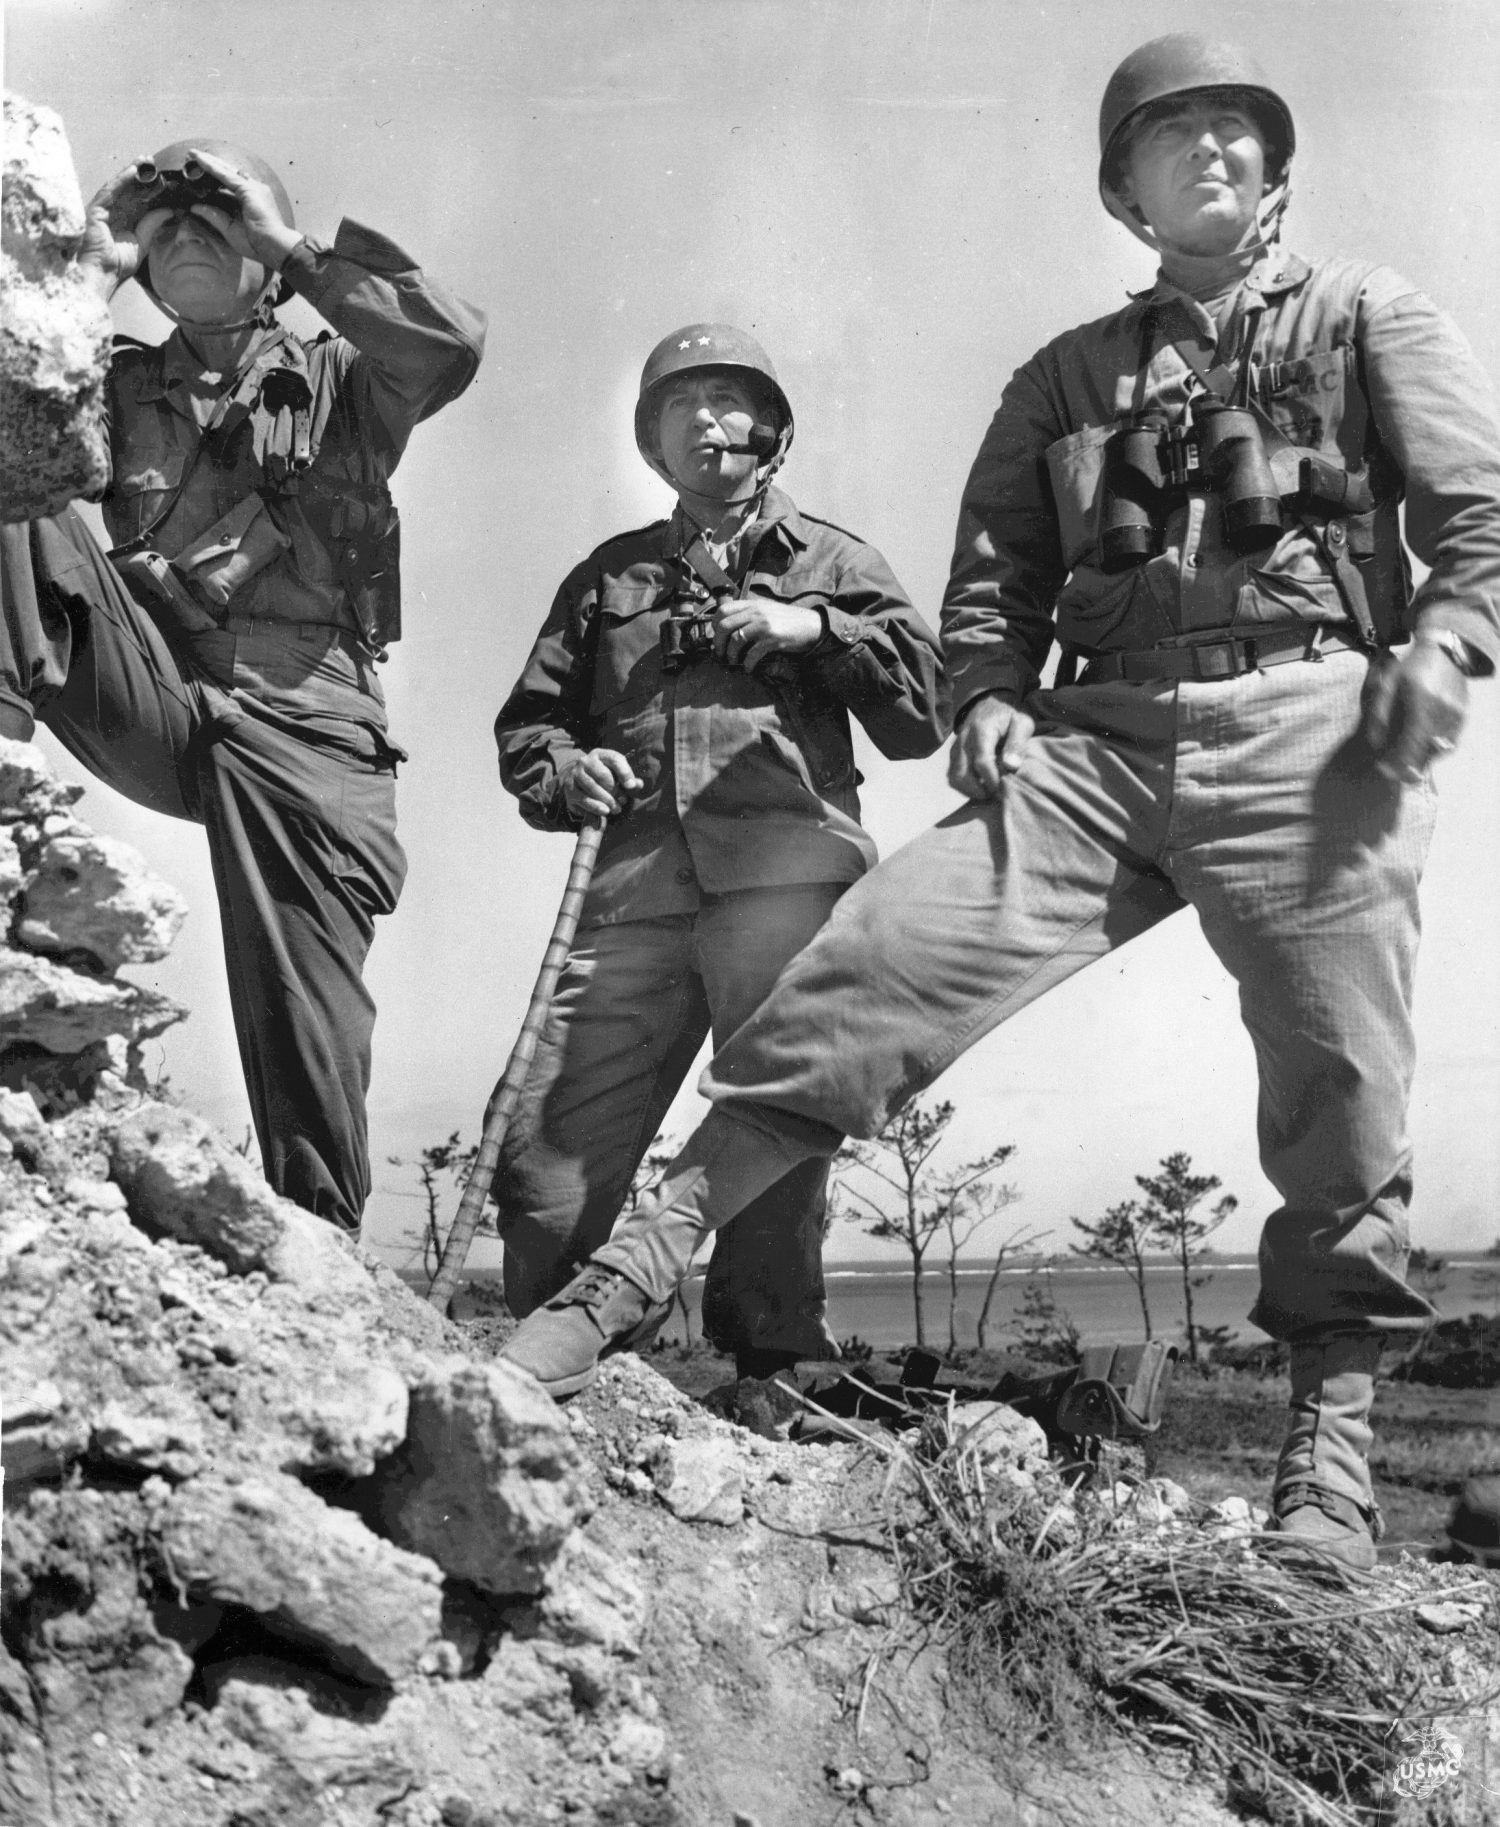 Lt. Gen. Simon Buckner, Jr., Maj. Gen. Lemuel Shepperd, and Brig. Gen. William Clement on Okinawa, 22 May 1945 (US Marine Corps photo)